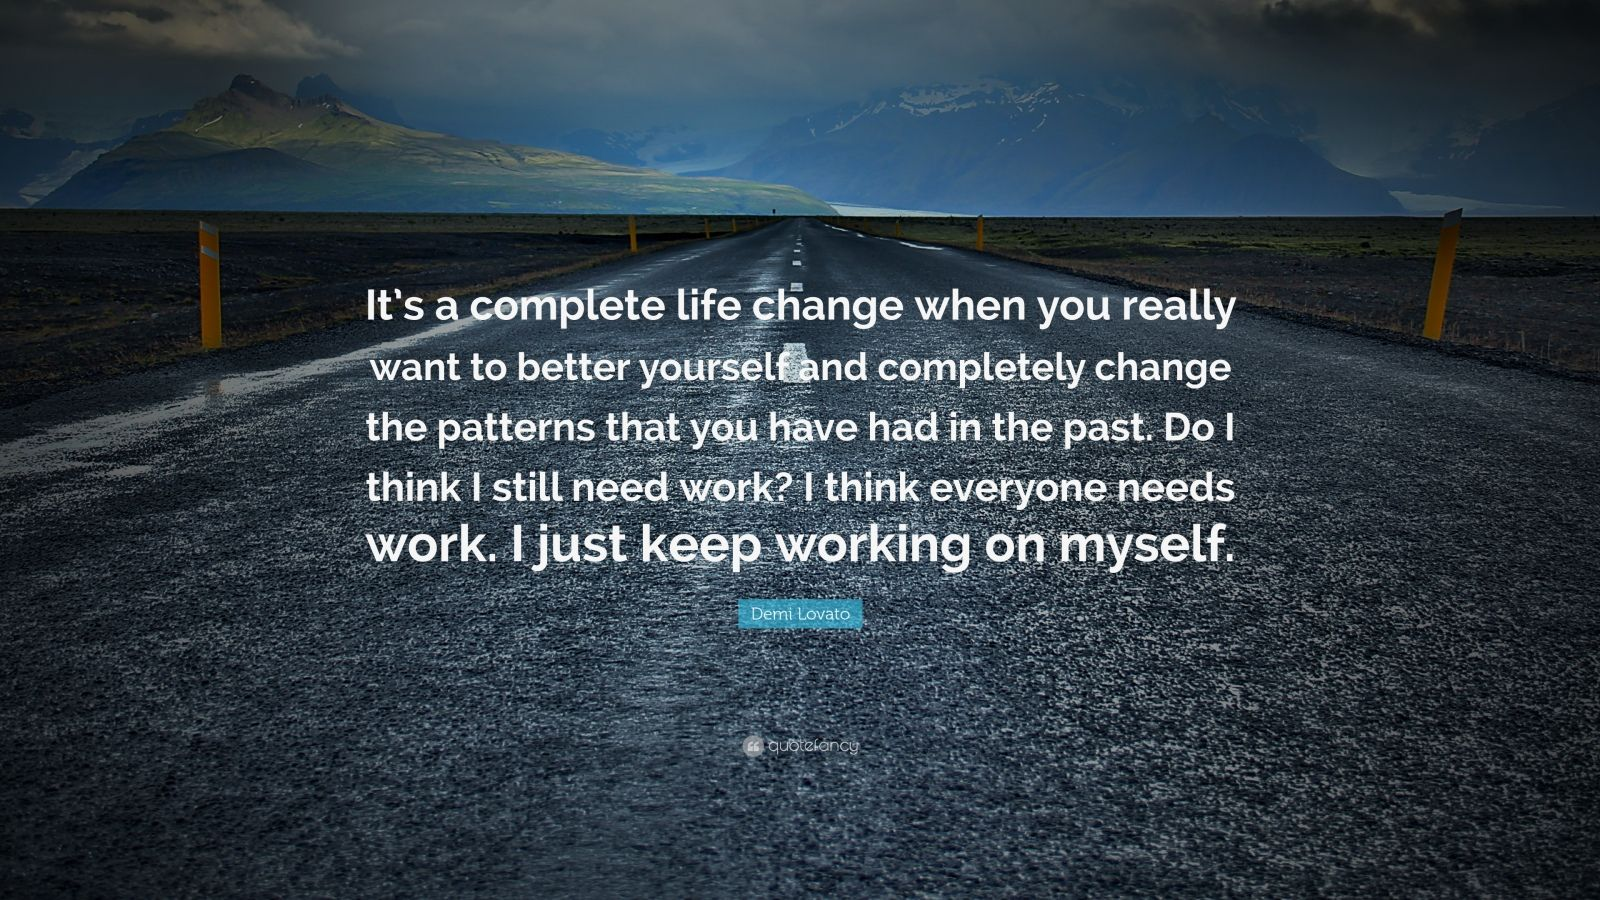 """Demi Lovato Quote: """"It's a complete life change when you really want to better yourself and completely change the patterns that you have had in the past. Do I think I still need work? I think everyone needs work. I just keep working on myself."""""""